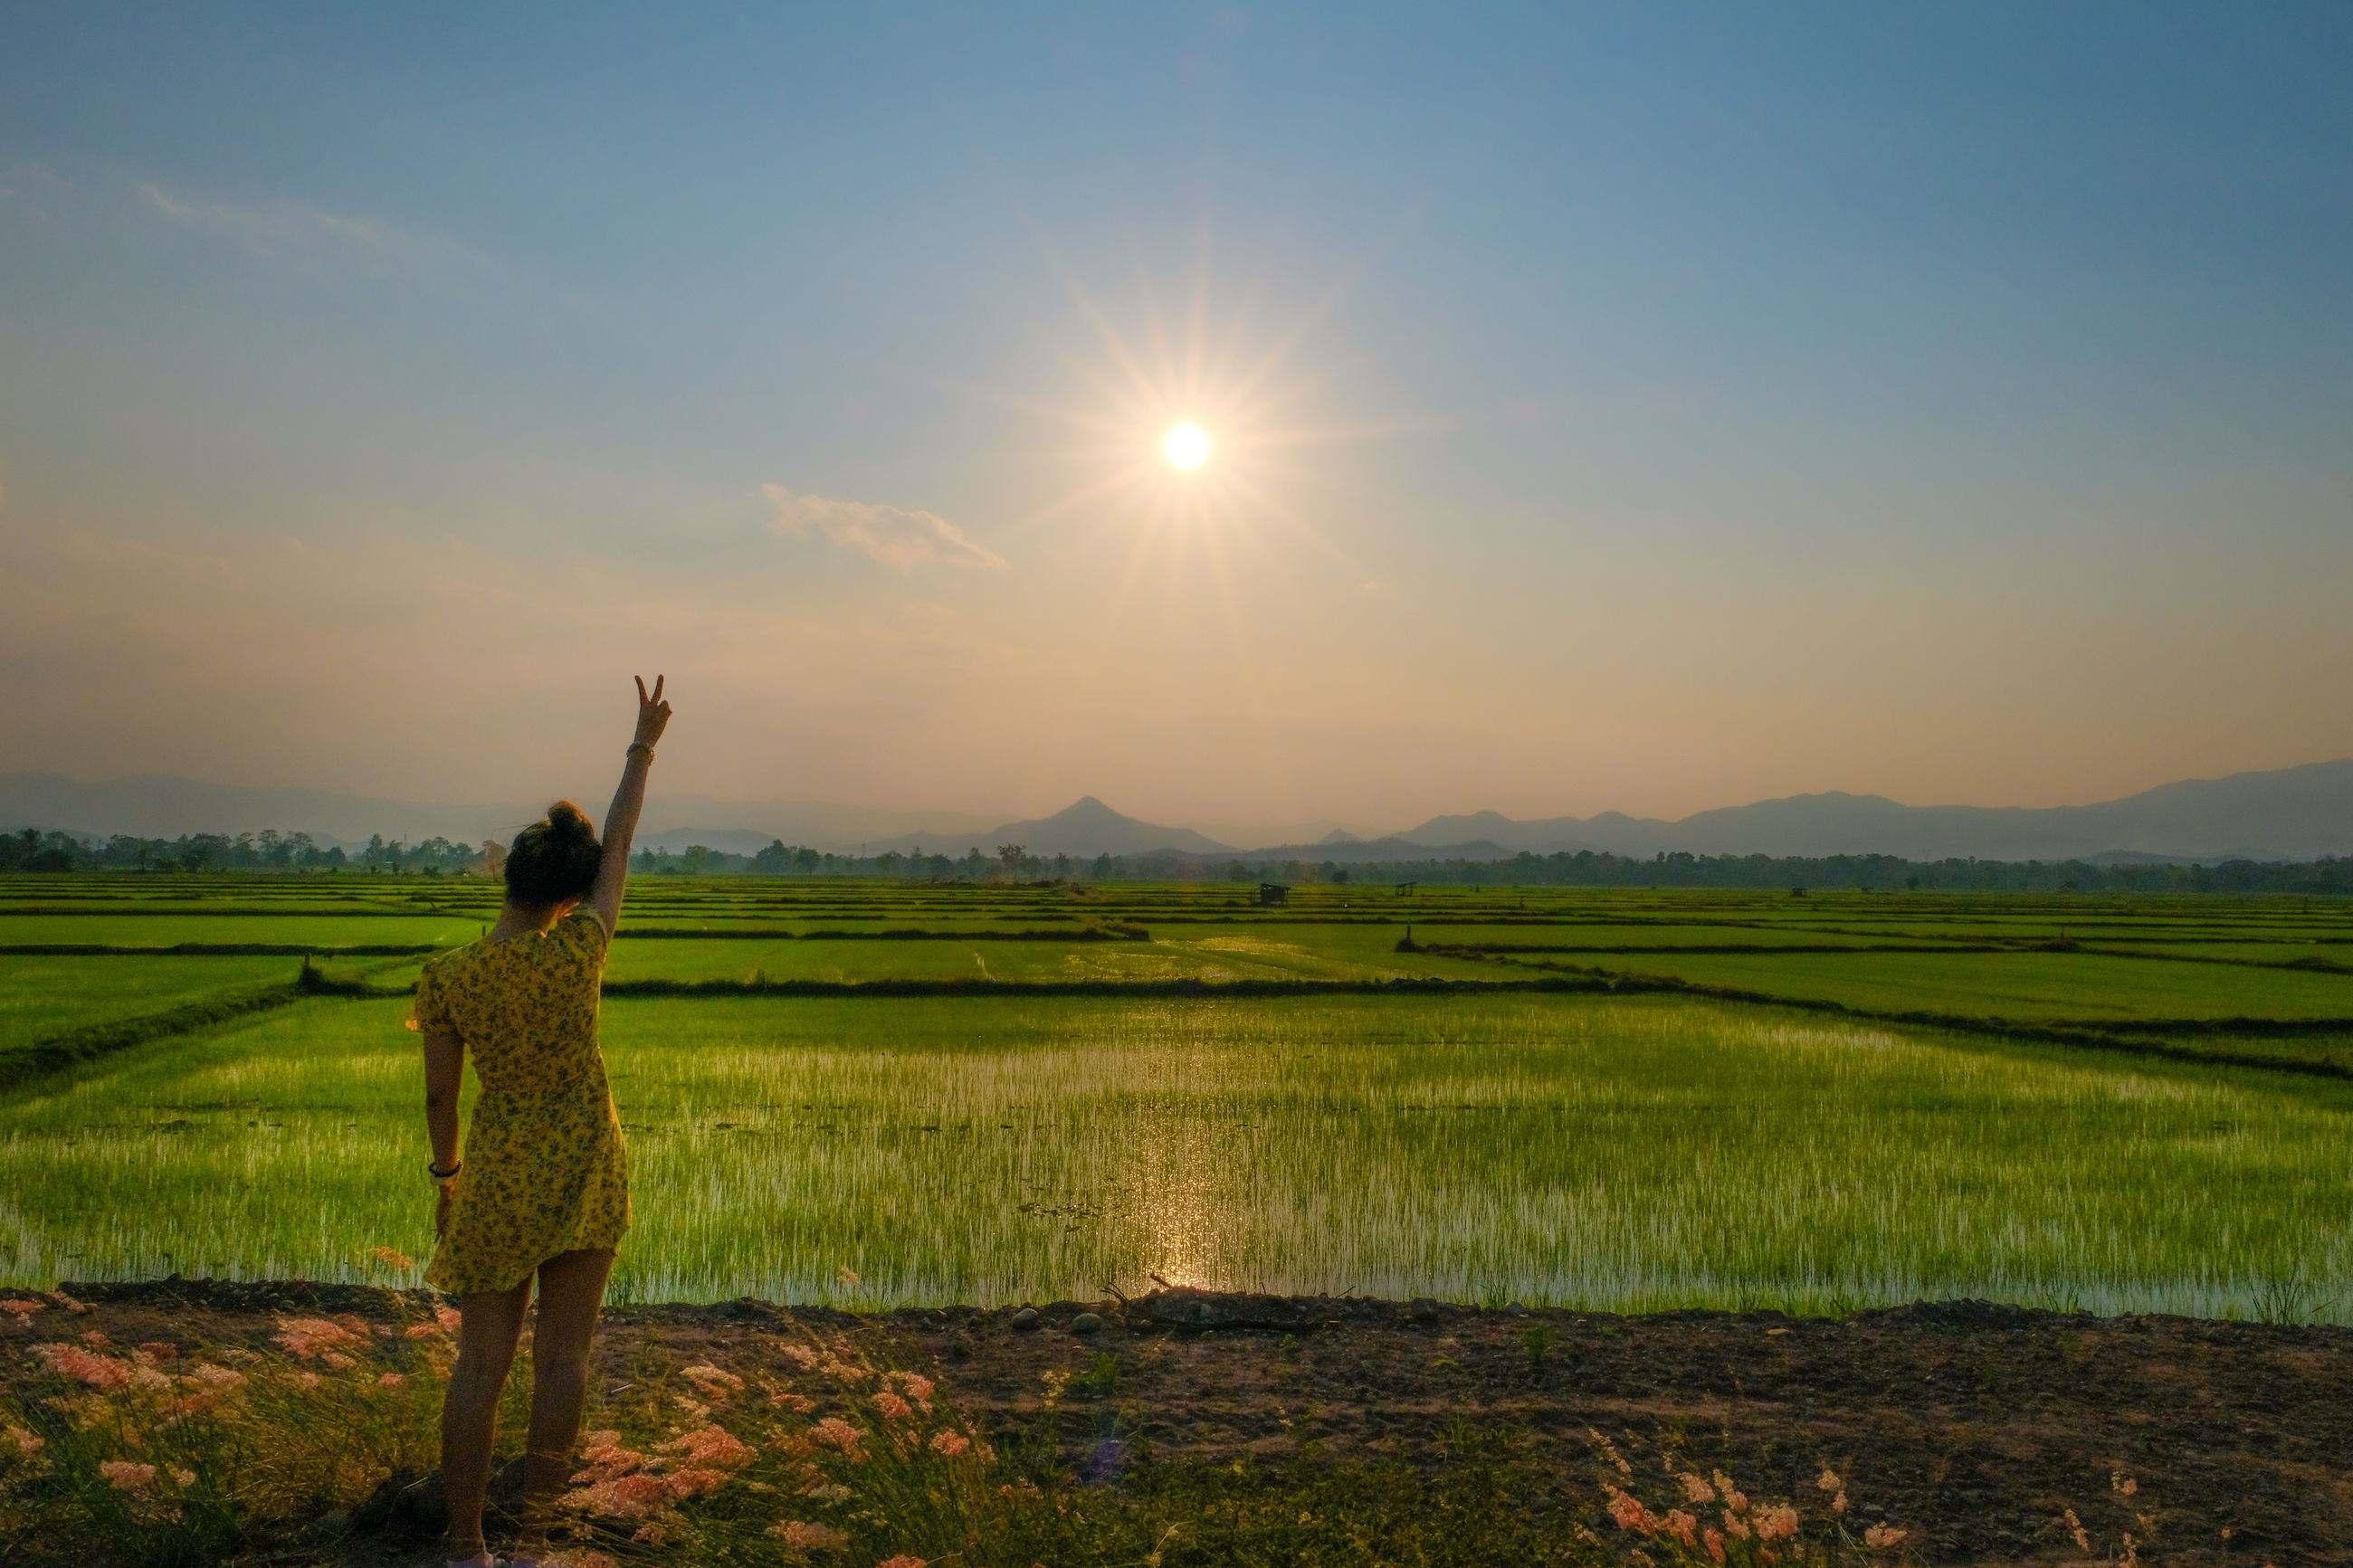 Rear view of woman with arm raised standing on agricultural field against sky during sunset